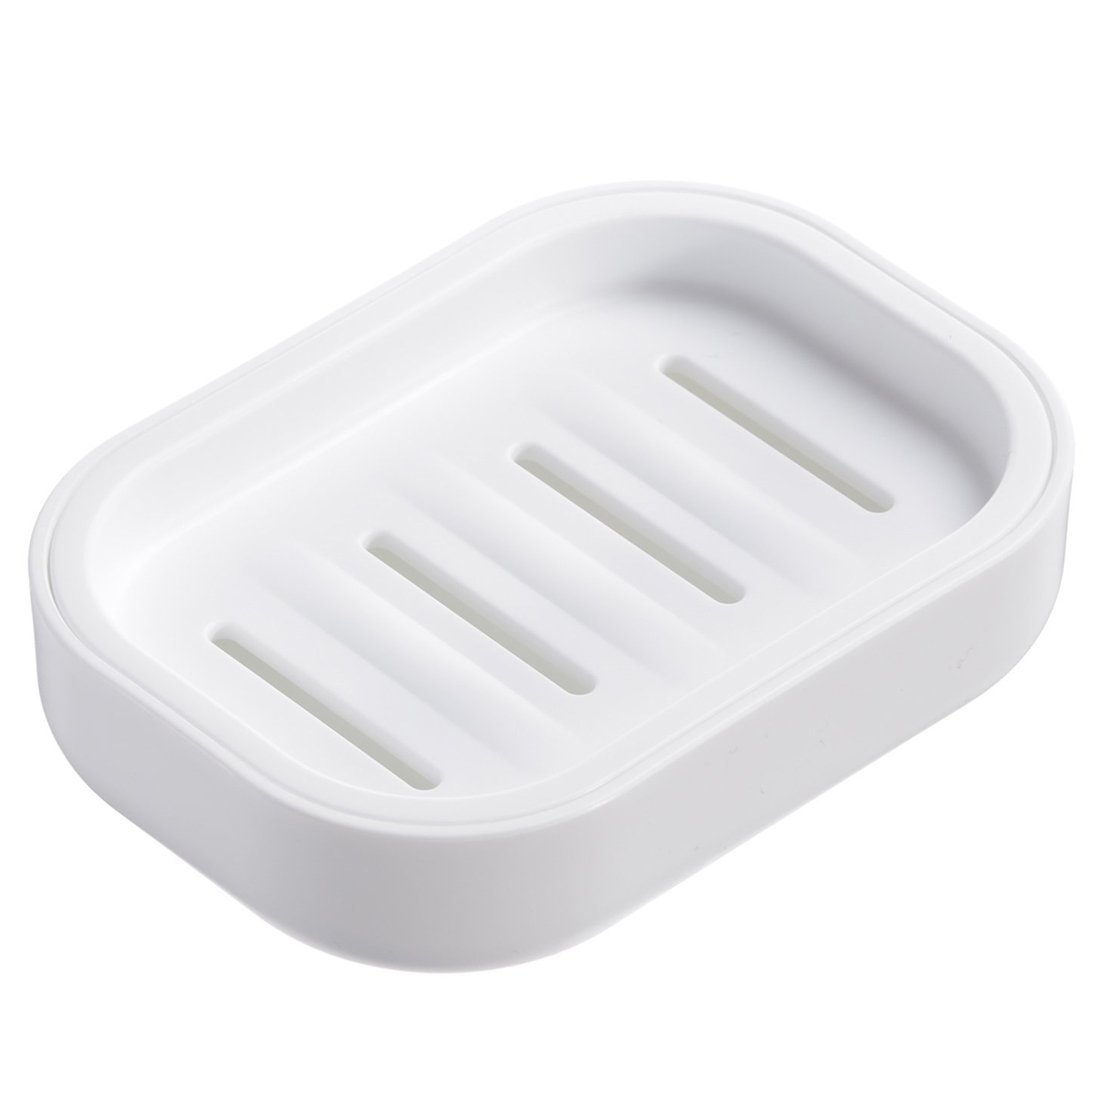 SODIAL(R) PP Plastic Soap Box,Dish,Soap Container, Keeps Soap Dry,Easy Cleaning,Drain,White